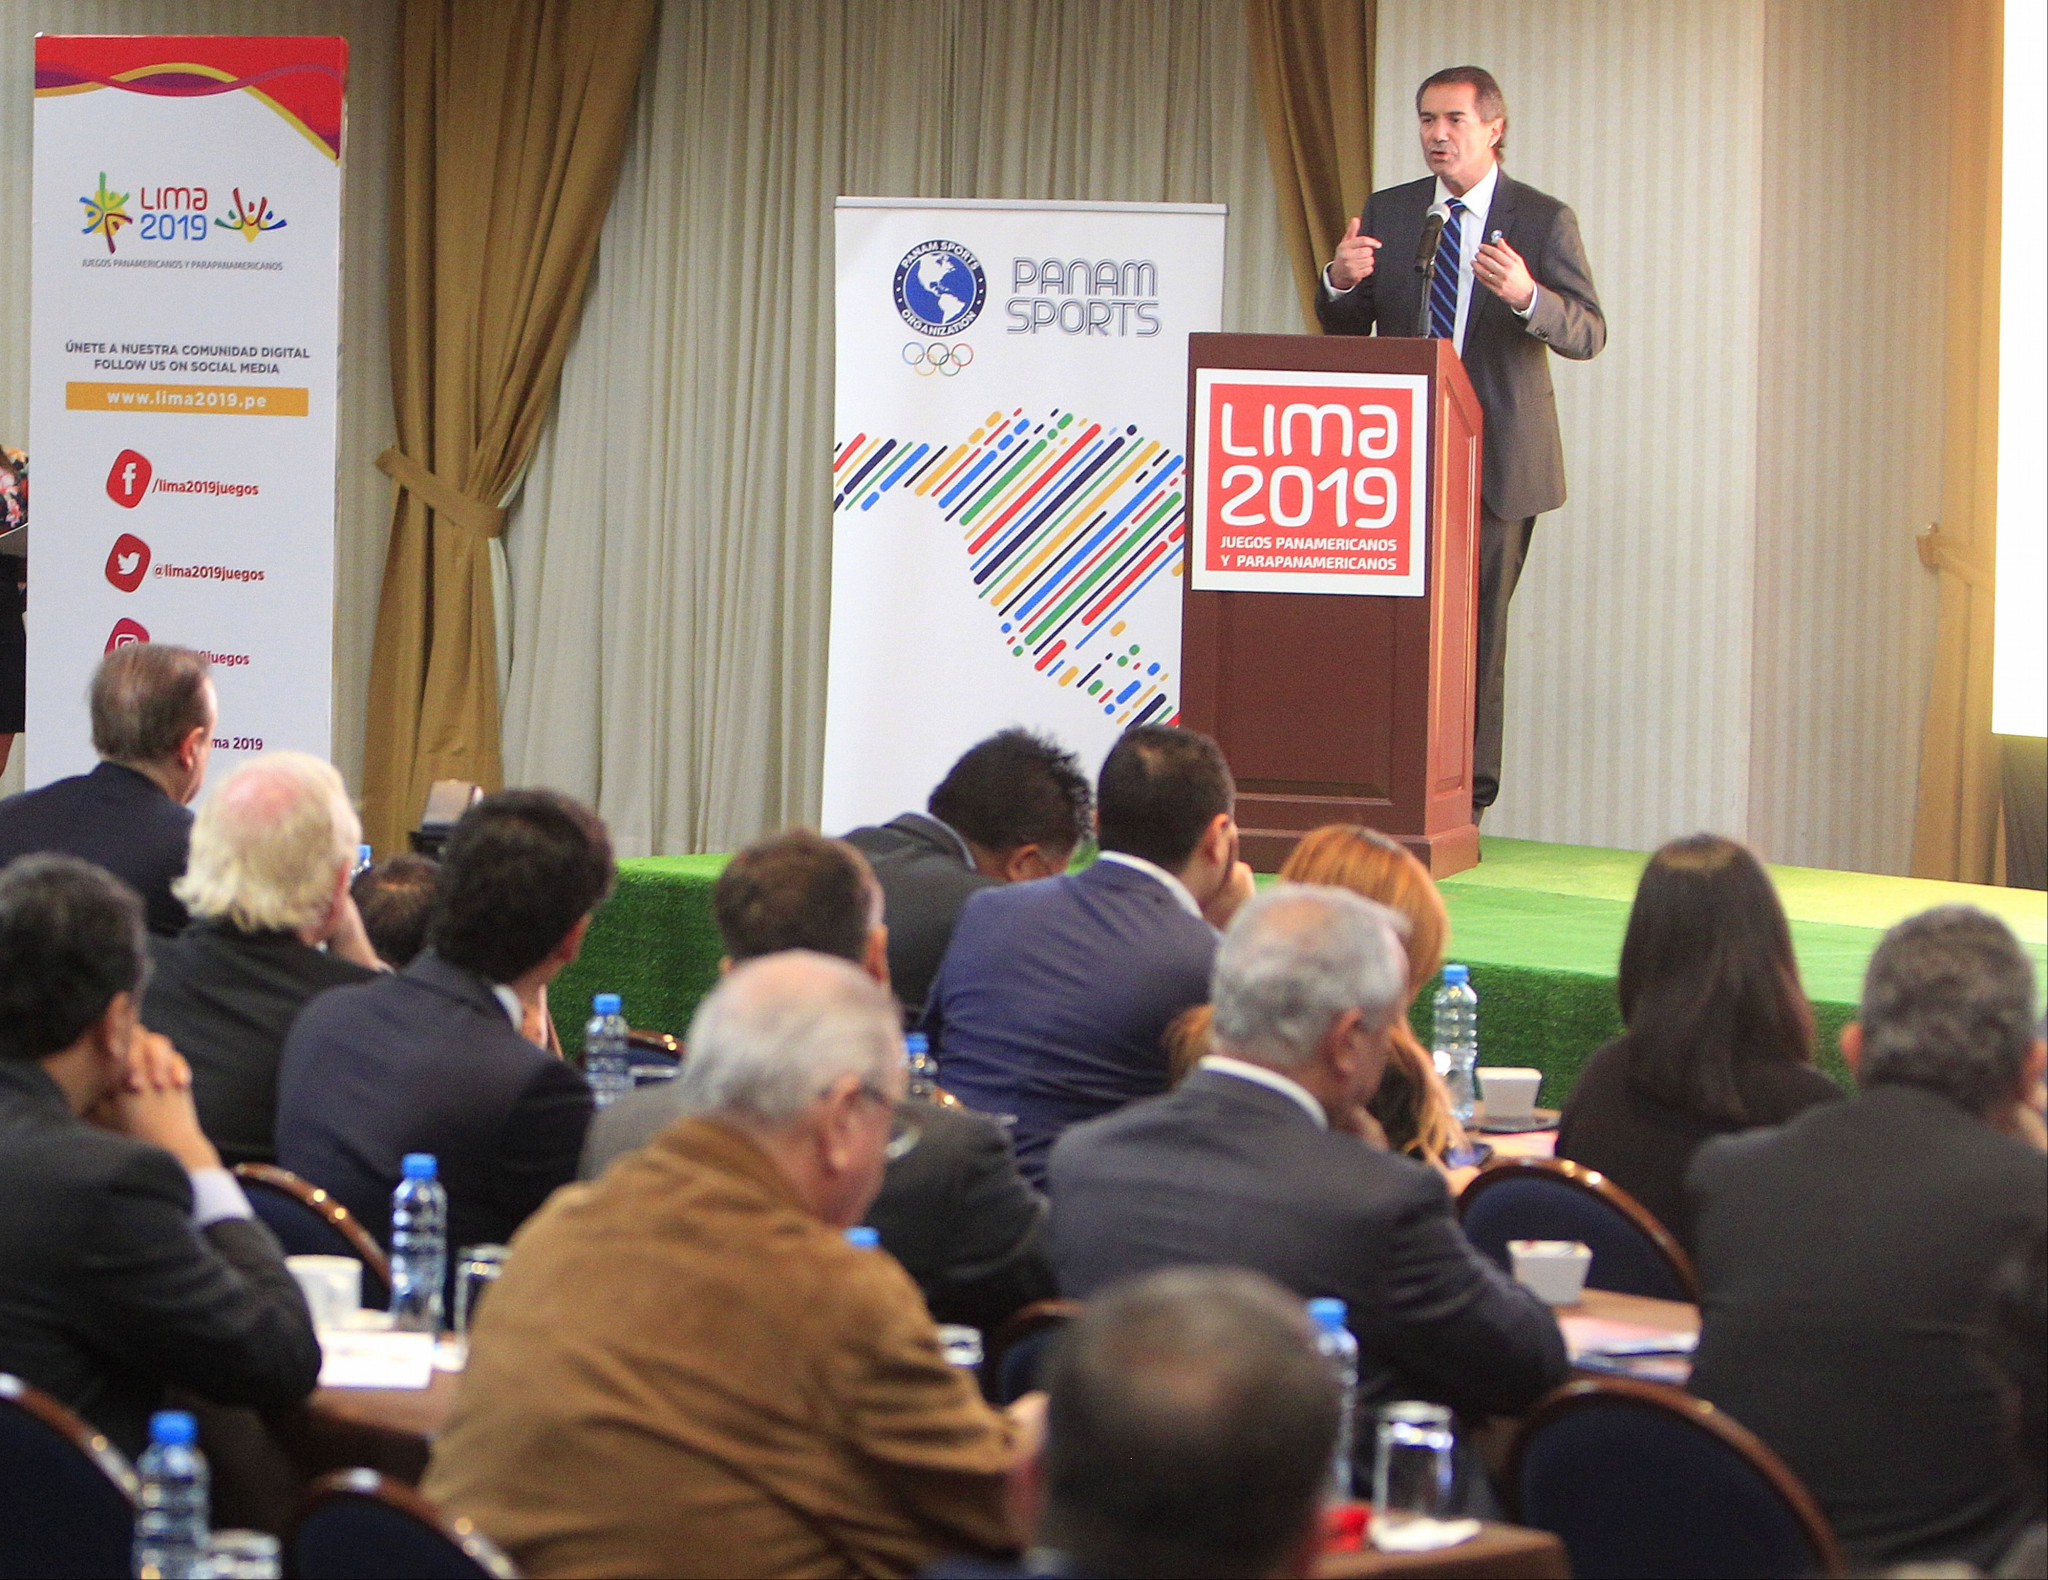 Lima 2019 hold sponsorship summit for companies interested in supporting Pan American Games